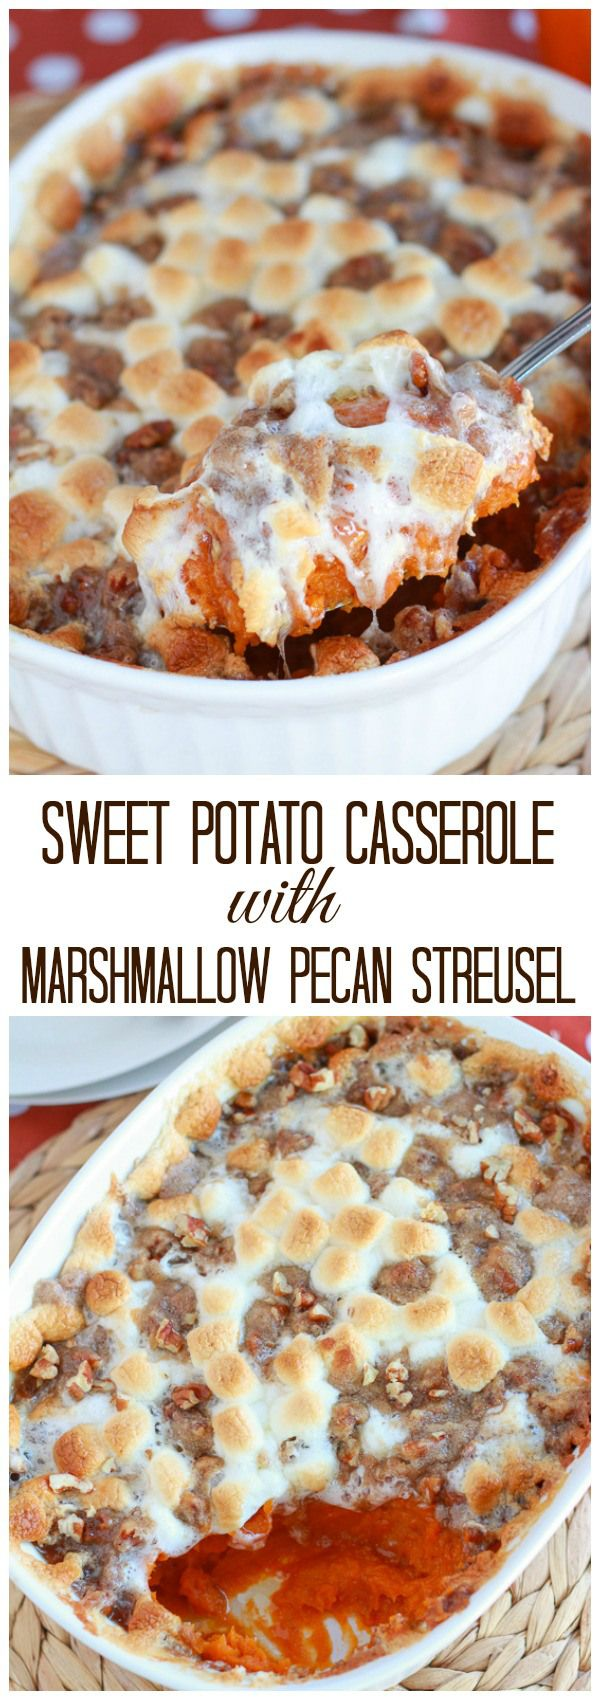 Creamy mashed sweet potatoes topped with toasted marshmallows and a cinnamon pecan streusel.: